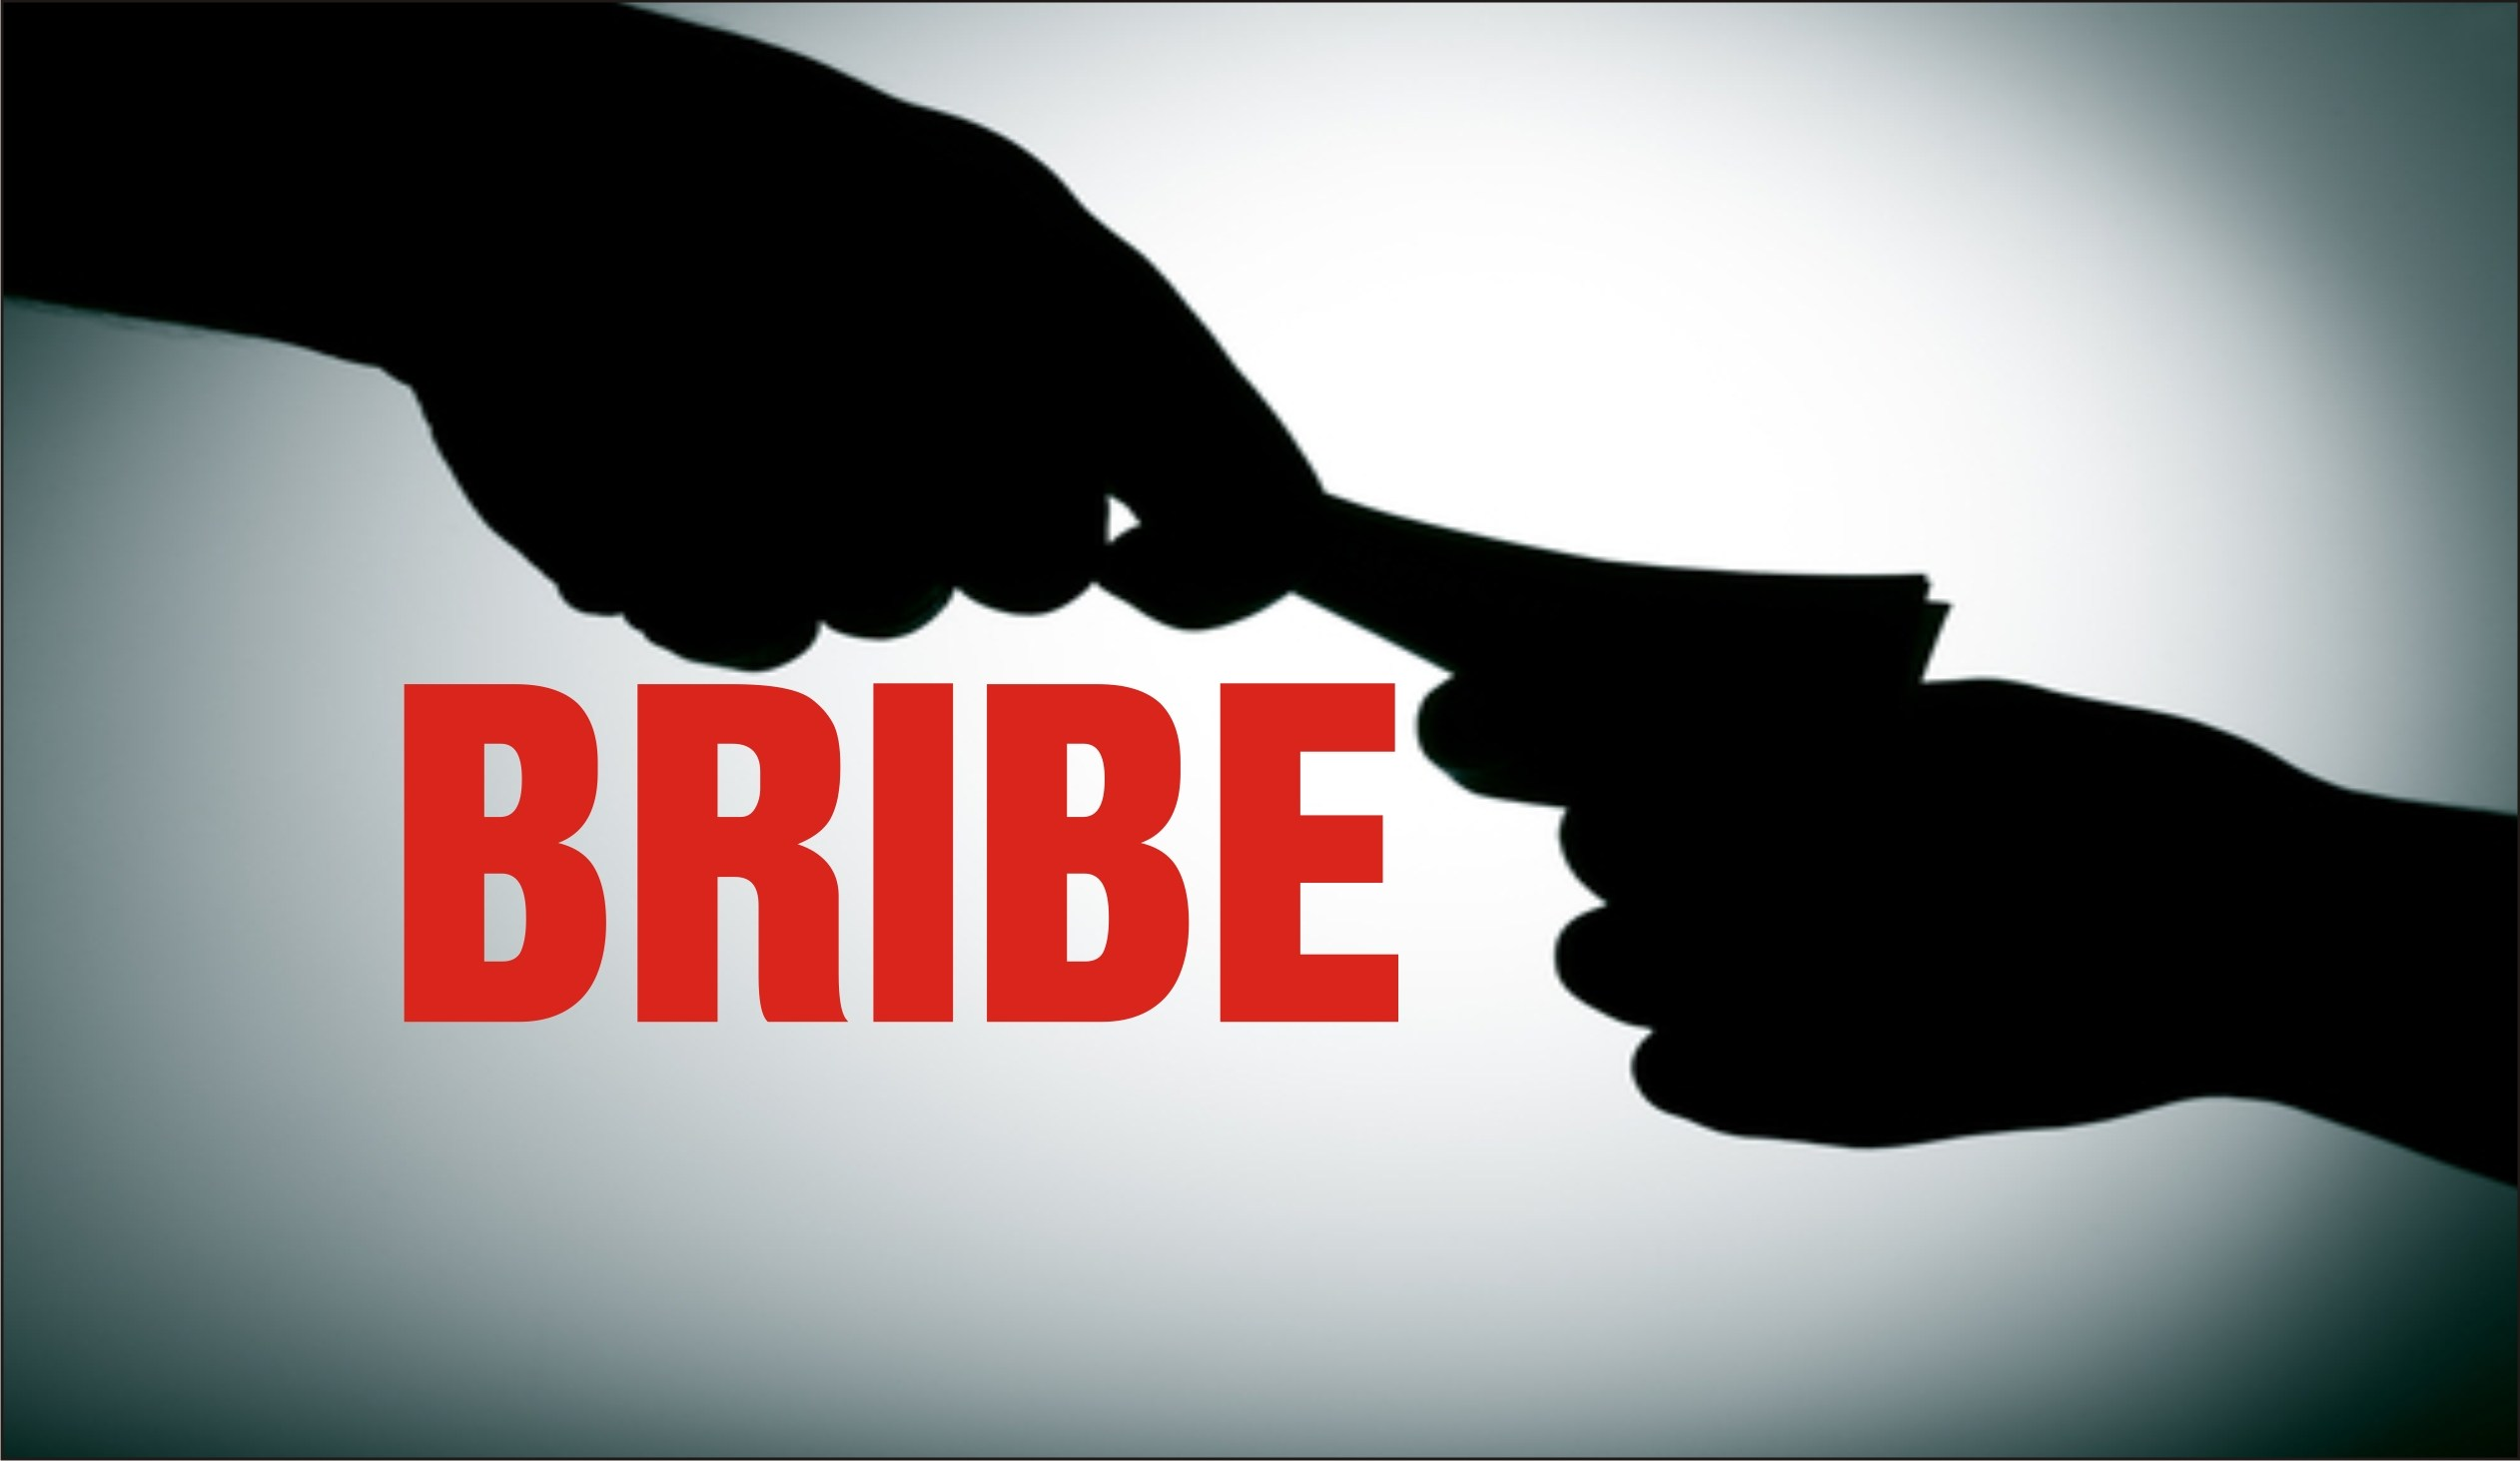 Watershed personnel arrested-Case of bribe